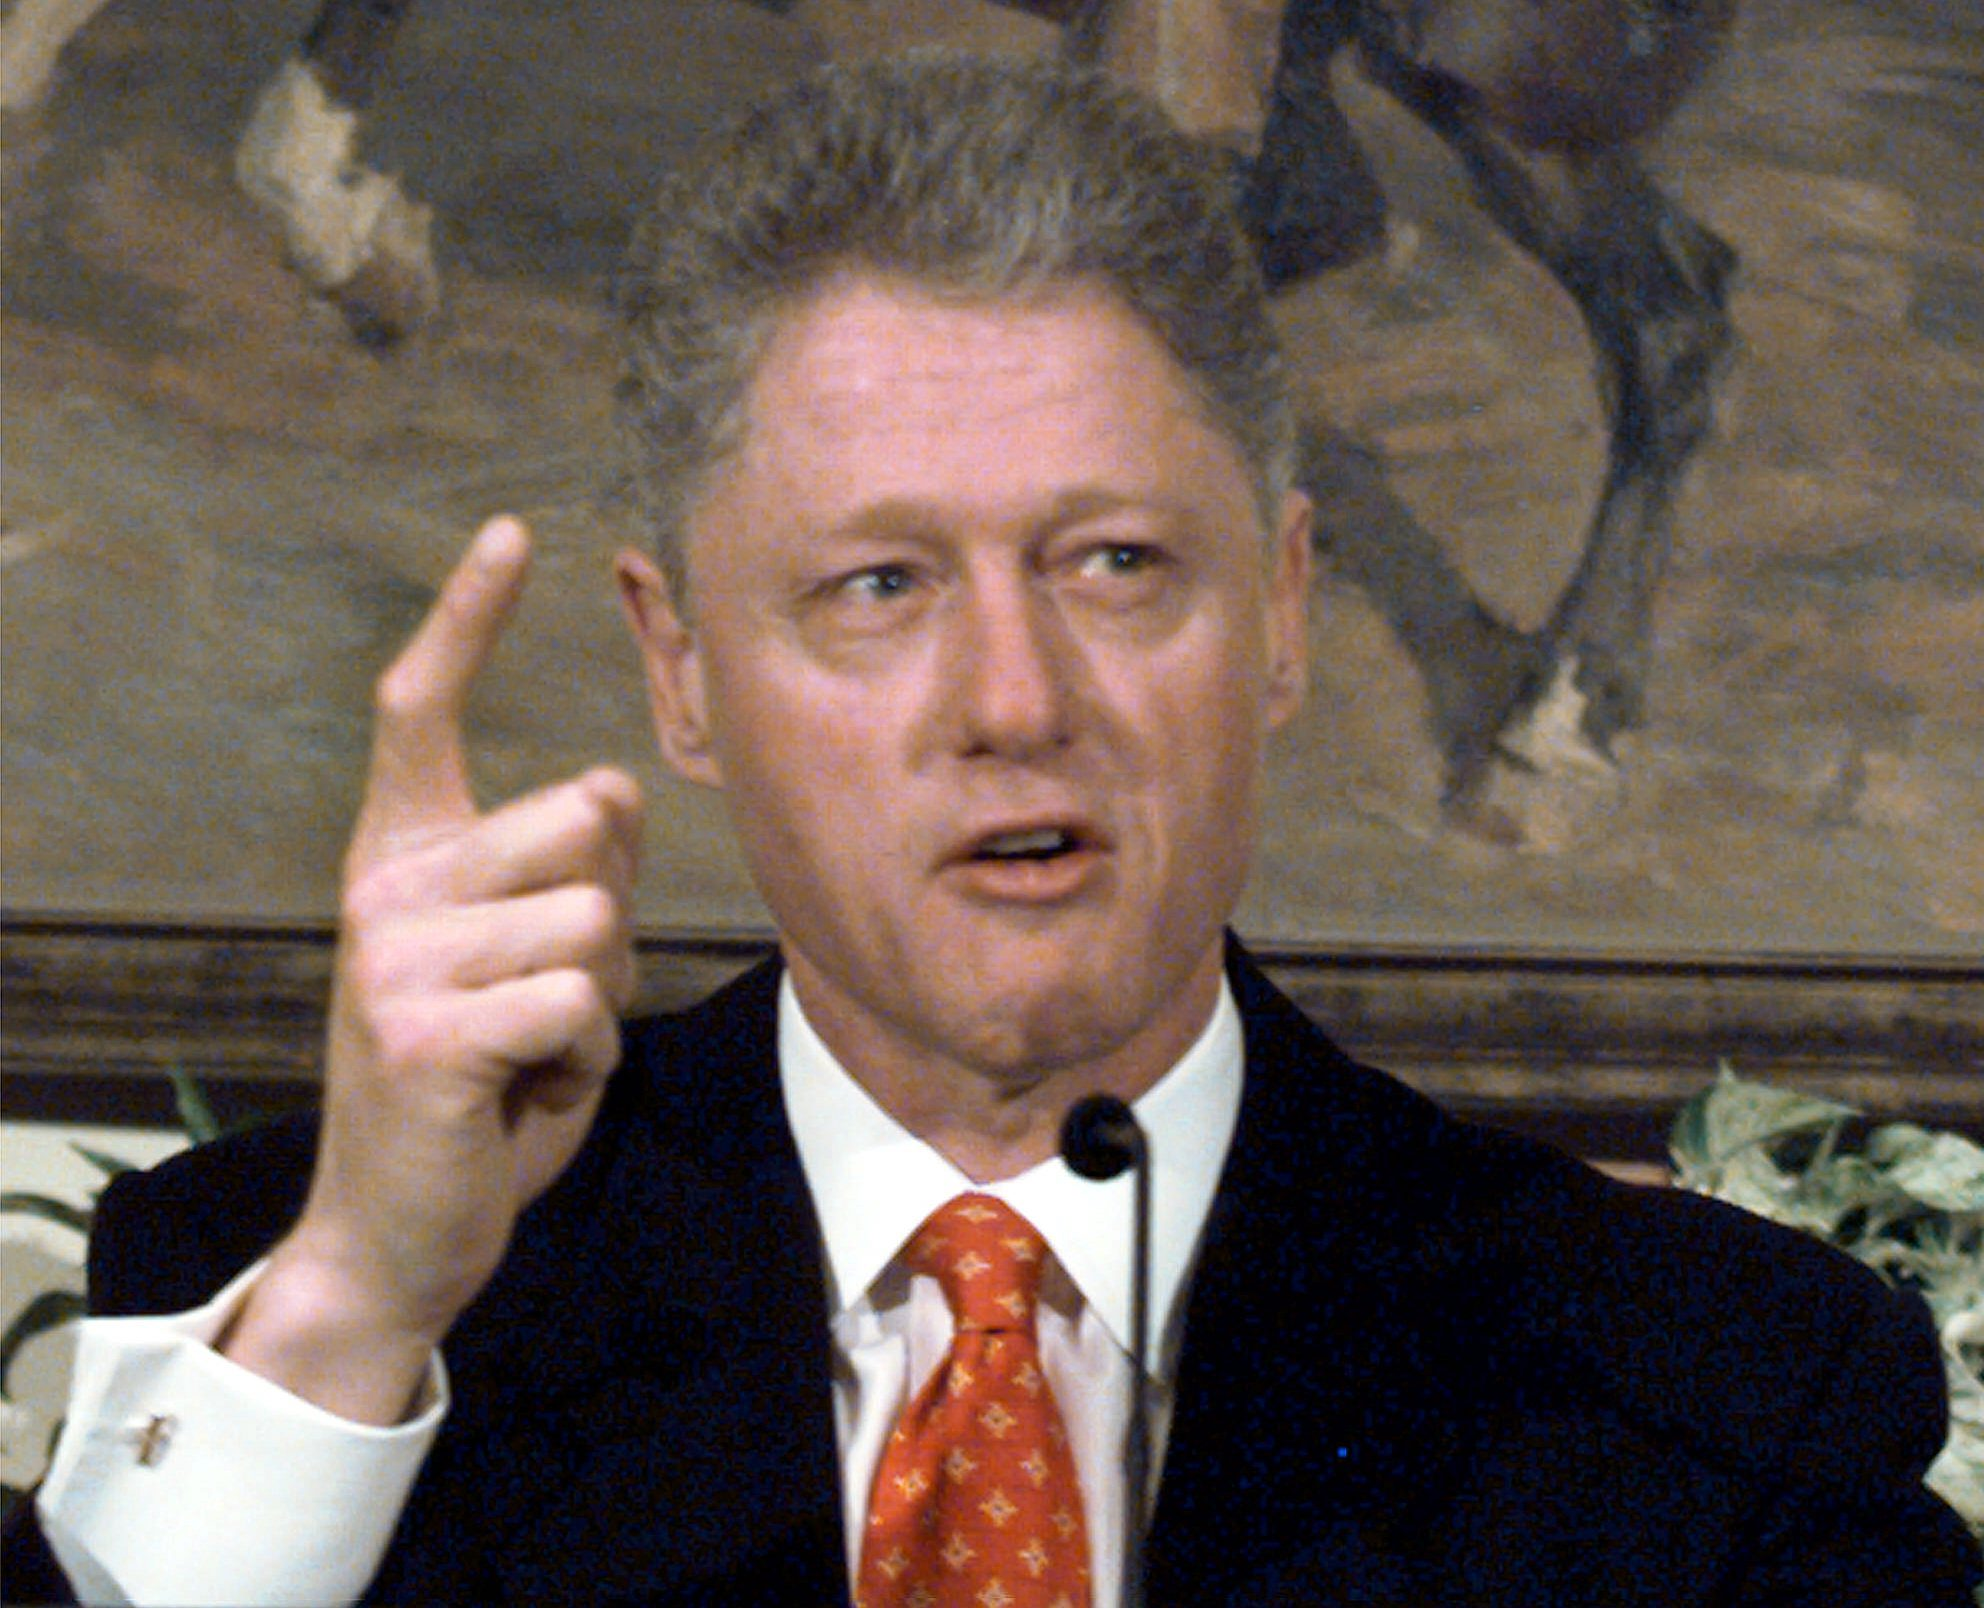 a look at the life and he infamous sexual scandal of president clinton He was later impeached in 1998 by the house of representatives on charges of perjury for denying he had a sexual relationship with lewinsky during grand jury testimony clinton was acquitted.